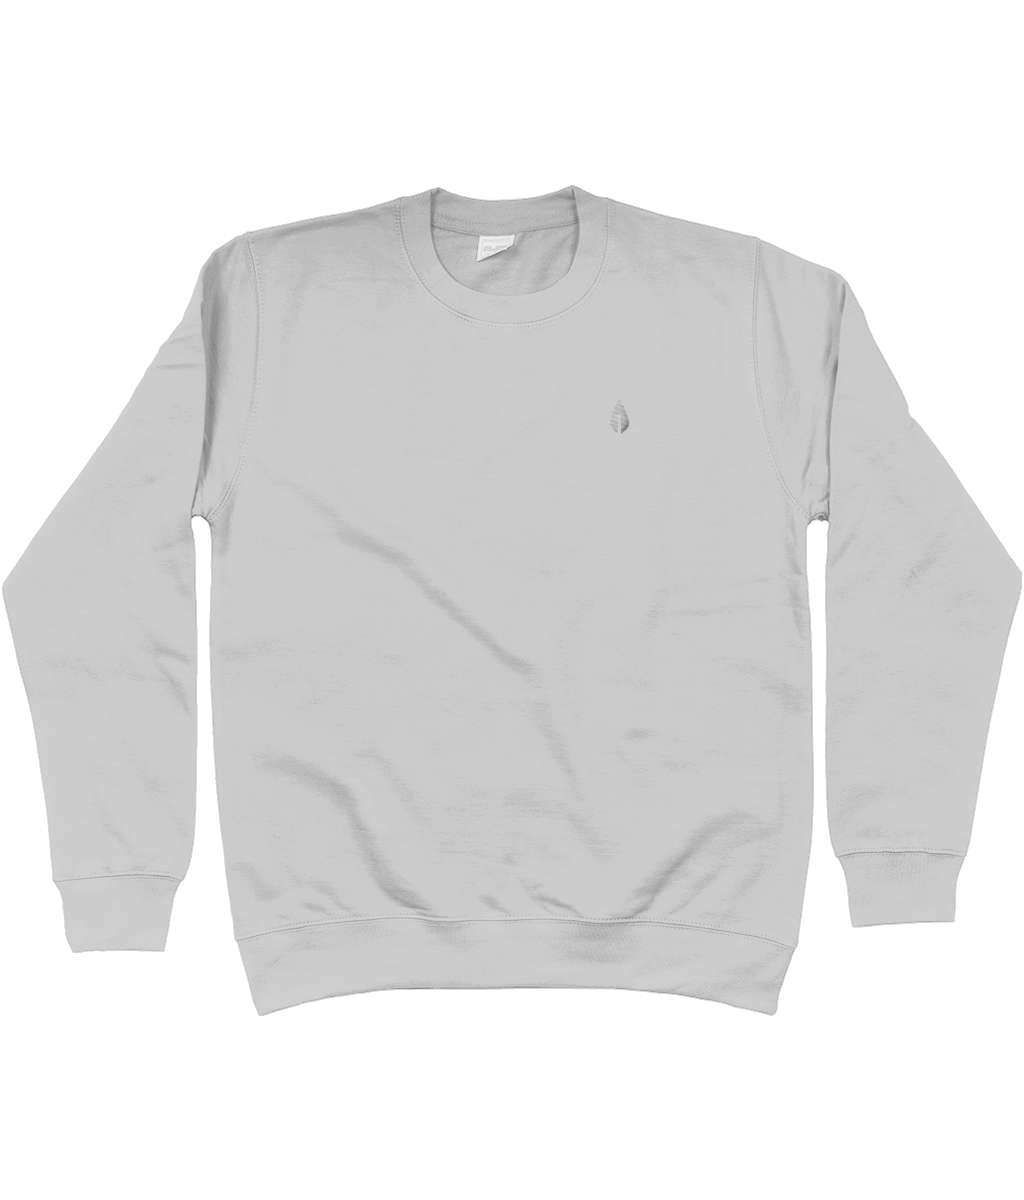 Unisex light grey Orontay series 2 vegan sportswear jumper with Orontay sprite logo